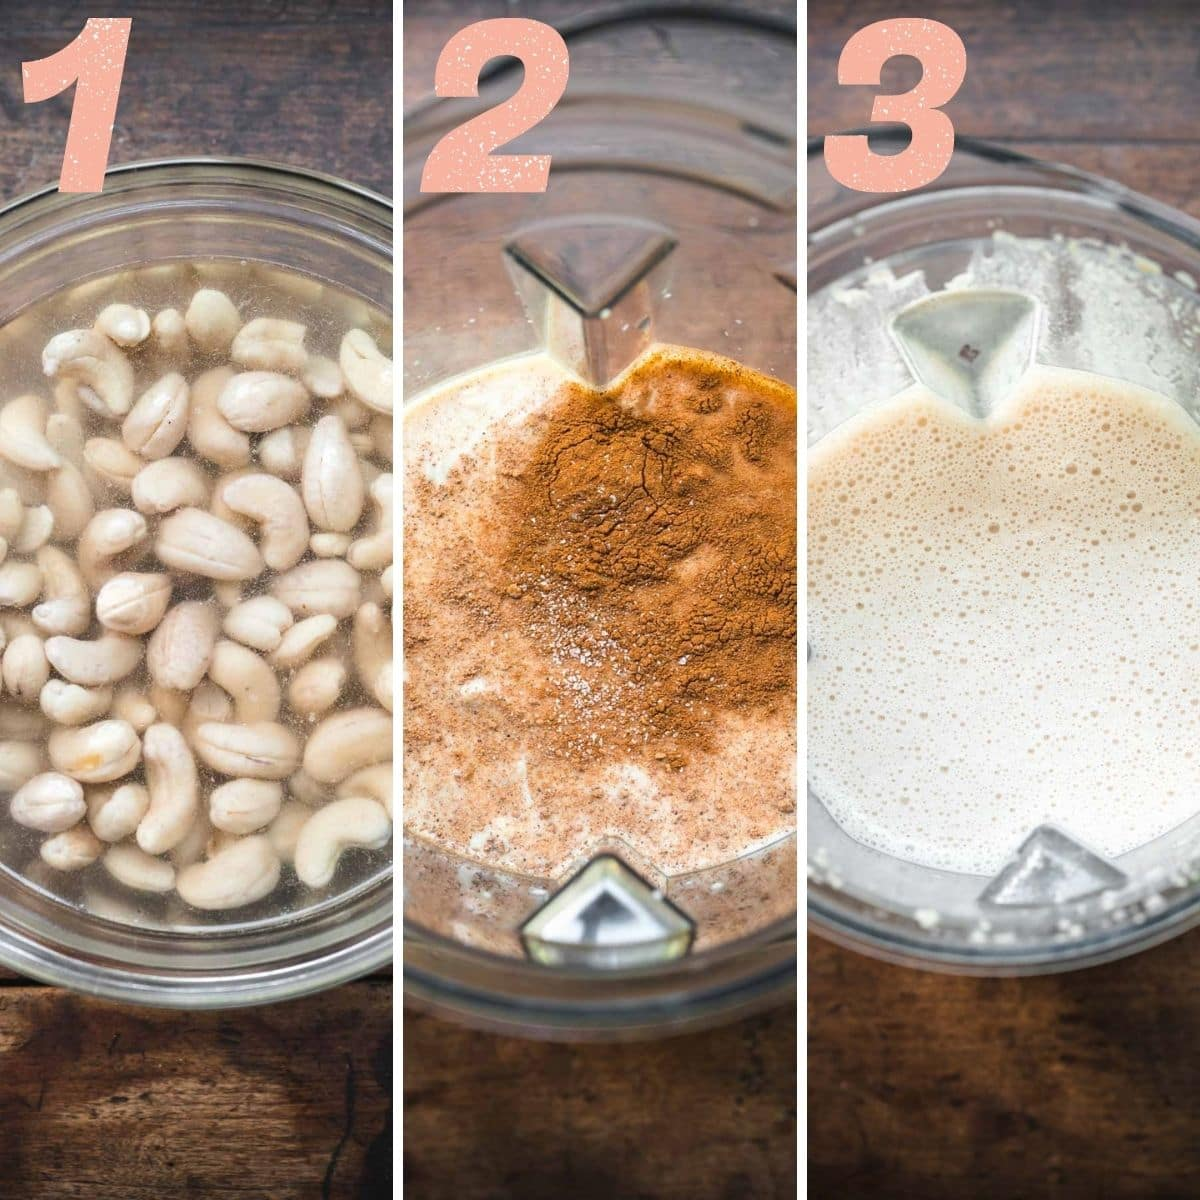 Three image panel of cashews soaking, spices being added, and then being blended.